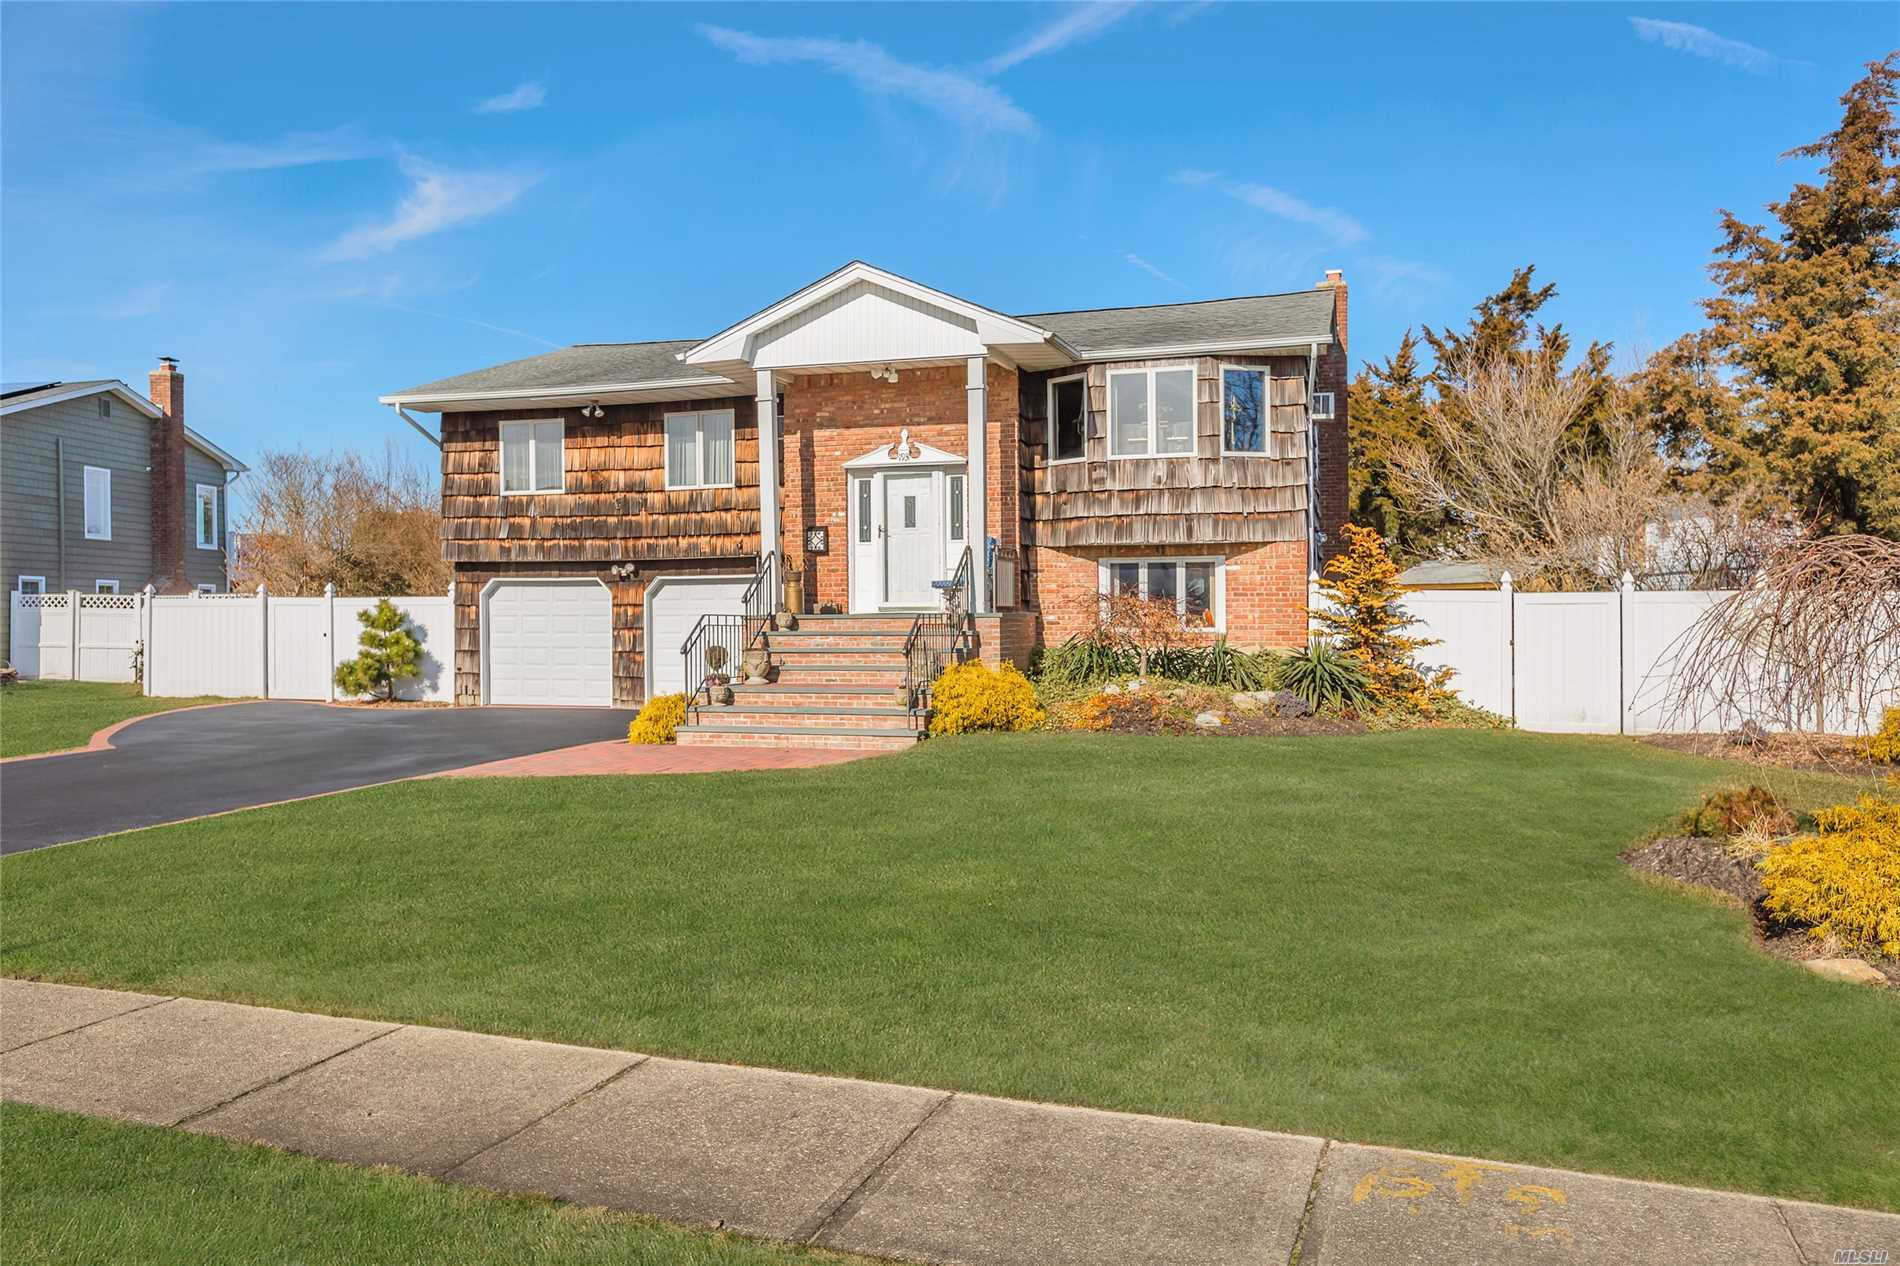 193  Anchorage  Dr, West Islip, NY 11795 - Open House on Sunday, Feb 24, 2019 at 12:30 PM